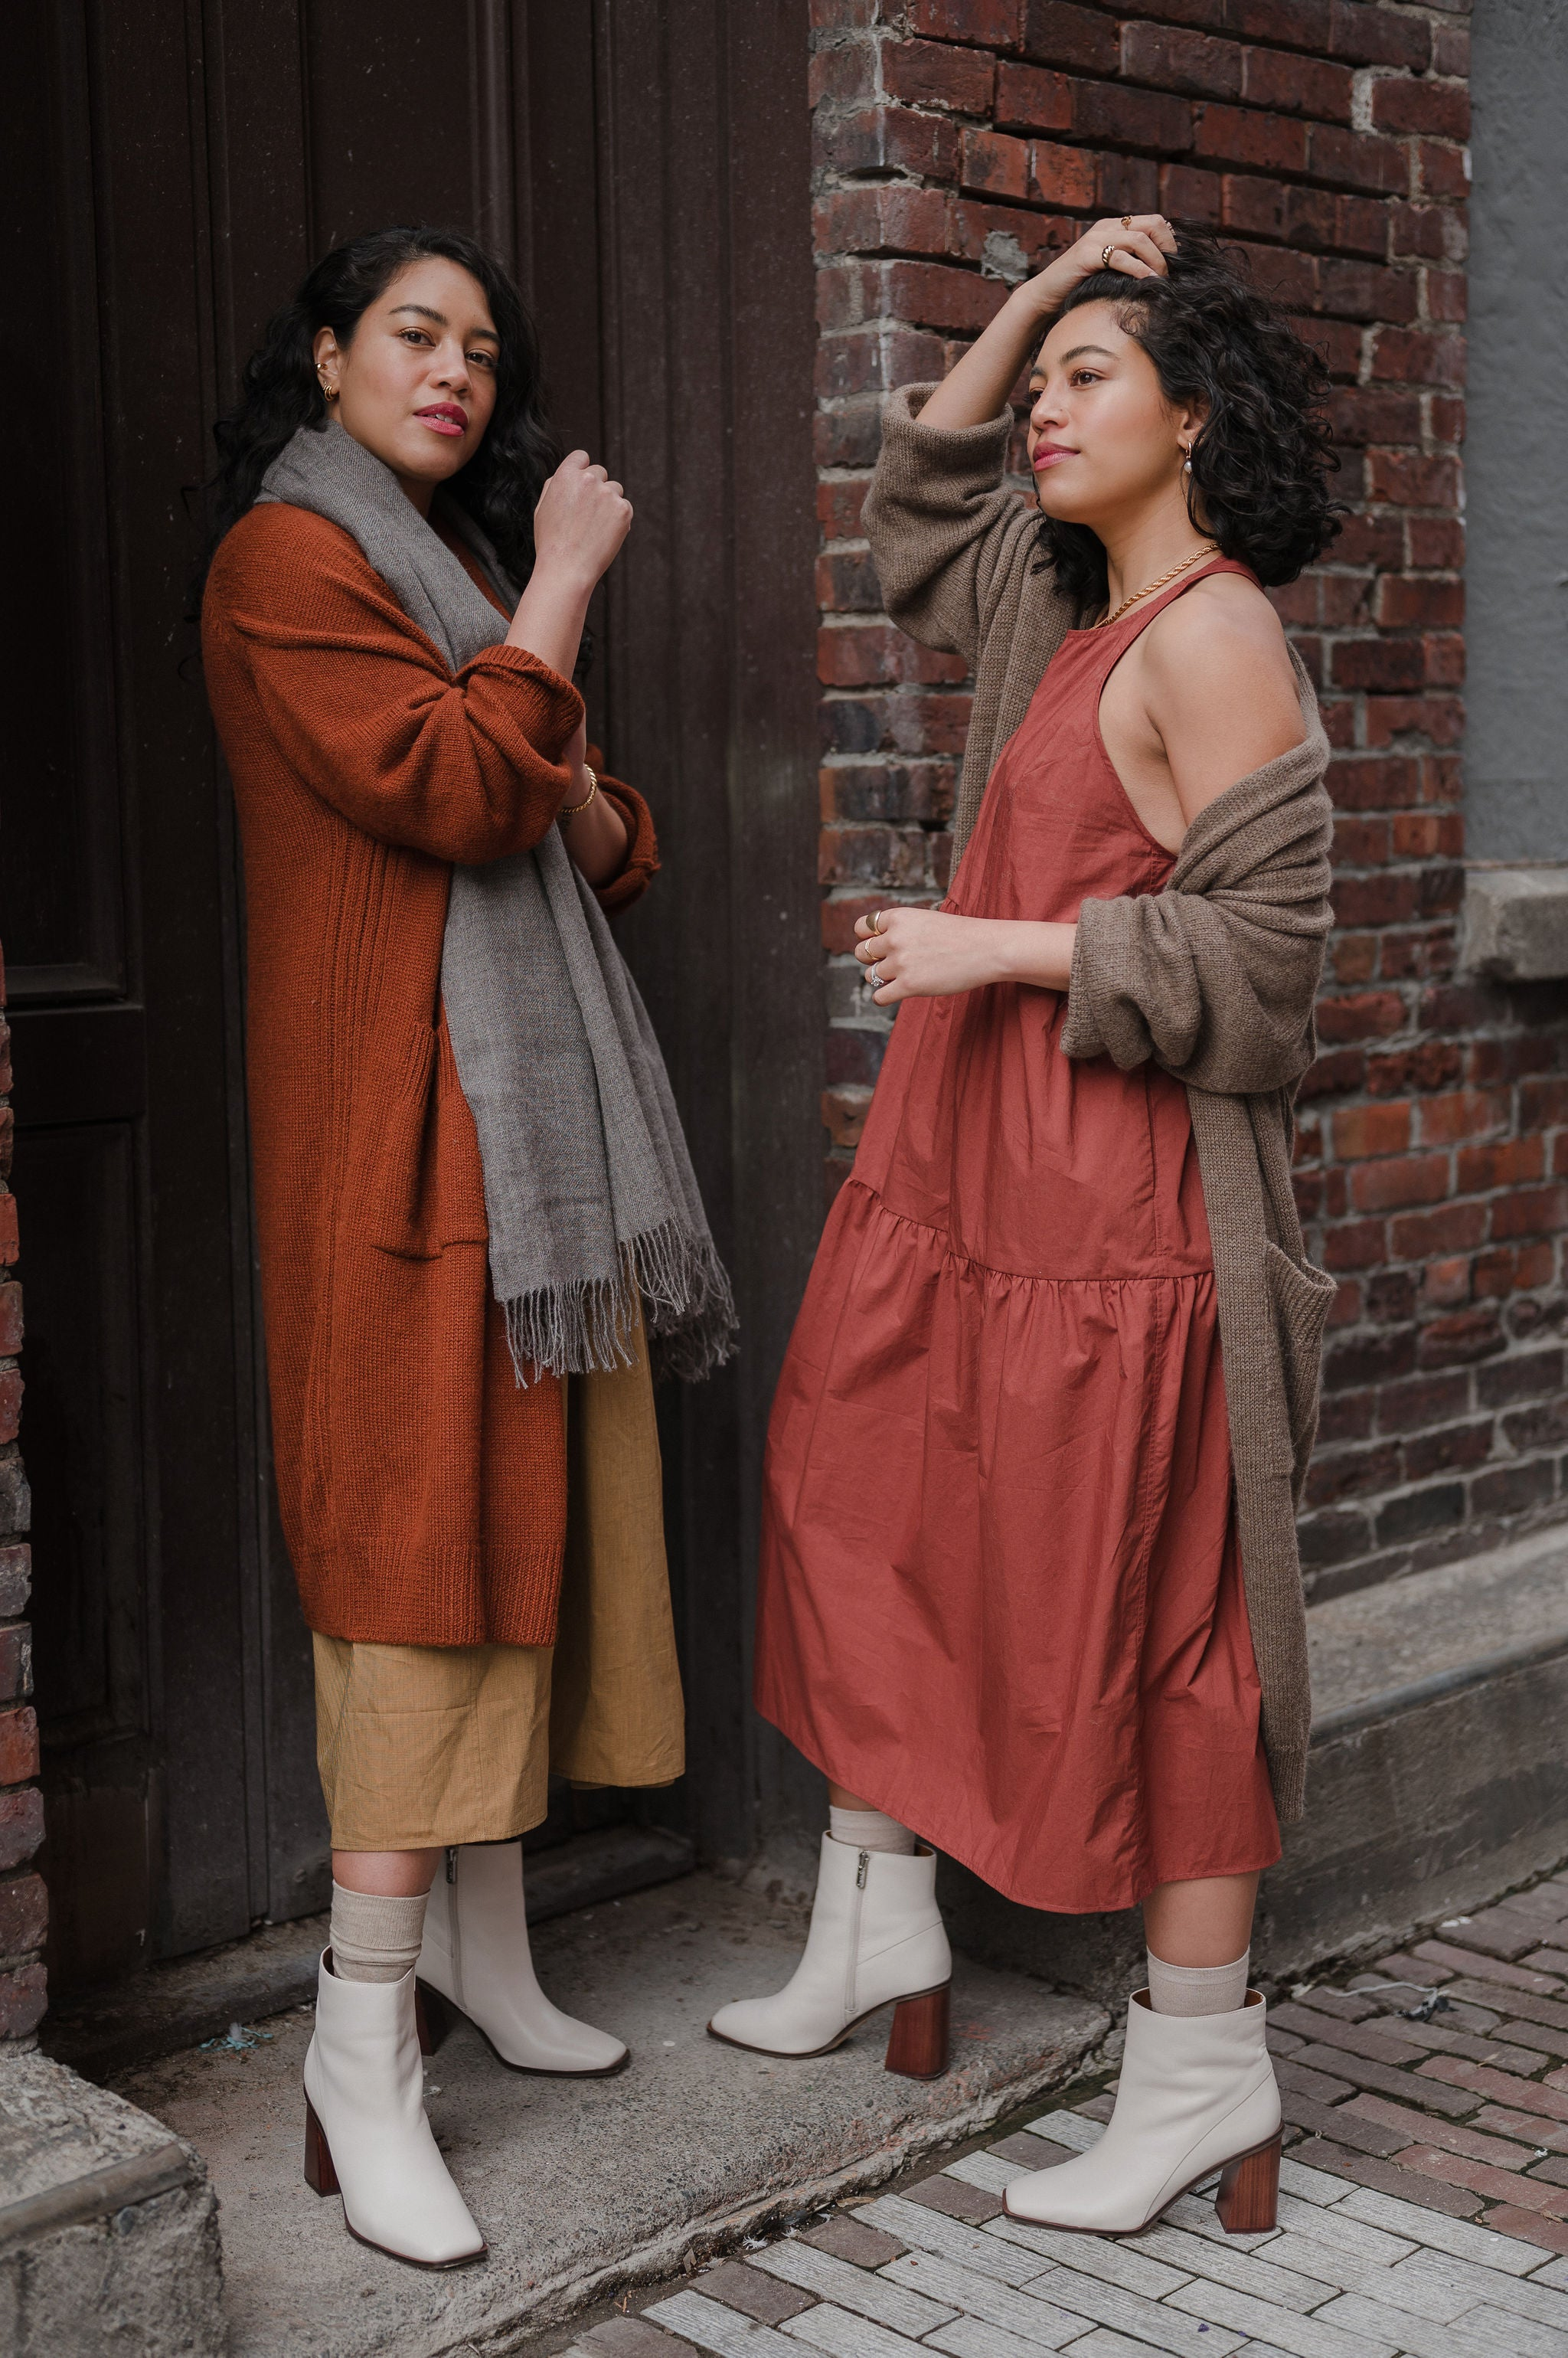 twin fashion women bloggers wearing long rust colored styles against a brick wall in alley. Long wheat colored cotton tiered dress under rust long baby alpaca cardigan with a grey scarf, both wearing white boots. The other twin wearing long rust cotton tiered dress with oatmeal colored cardigan and white boots pulling her hair off her face